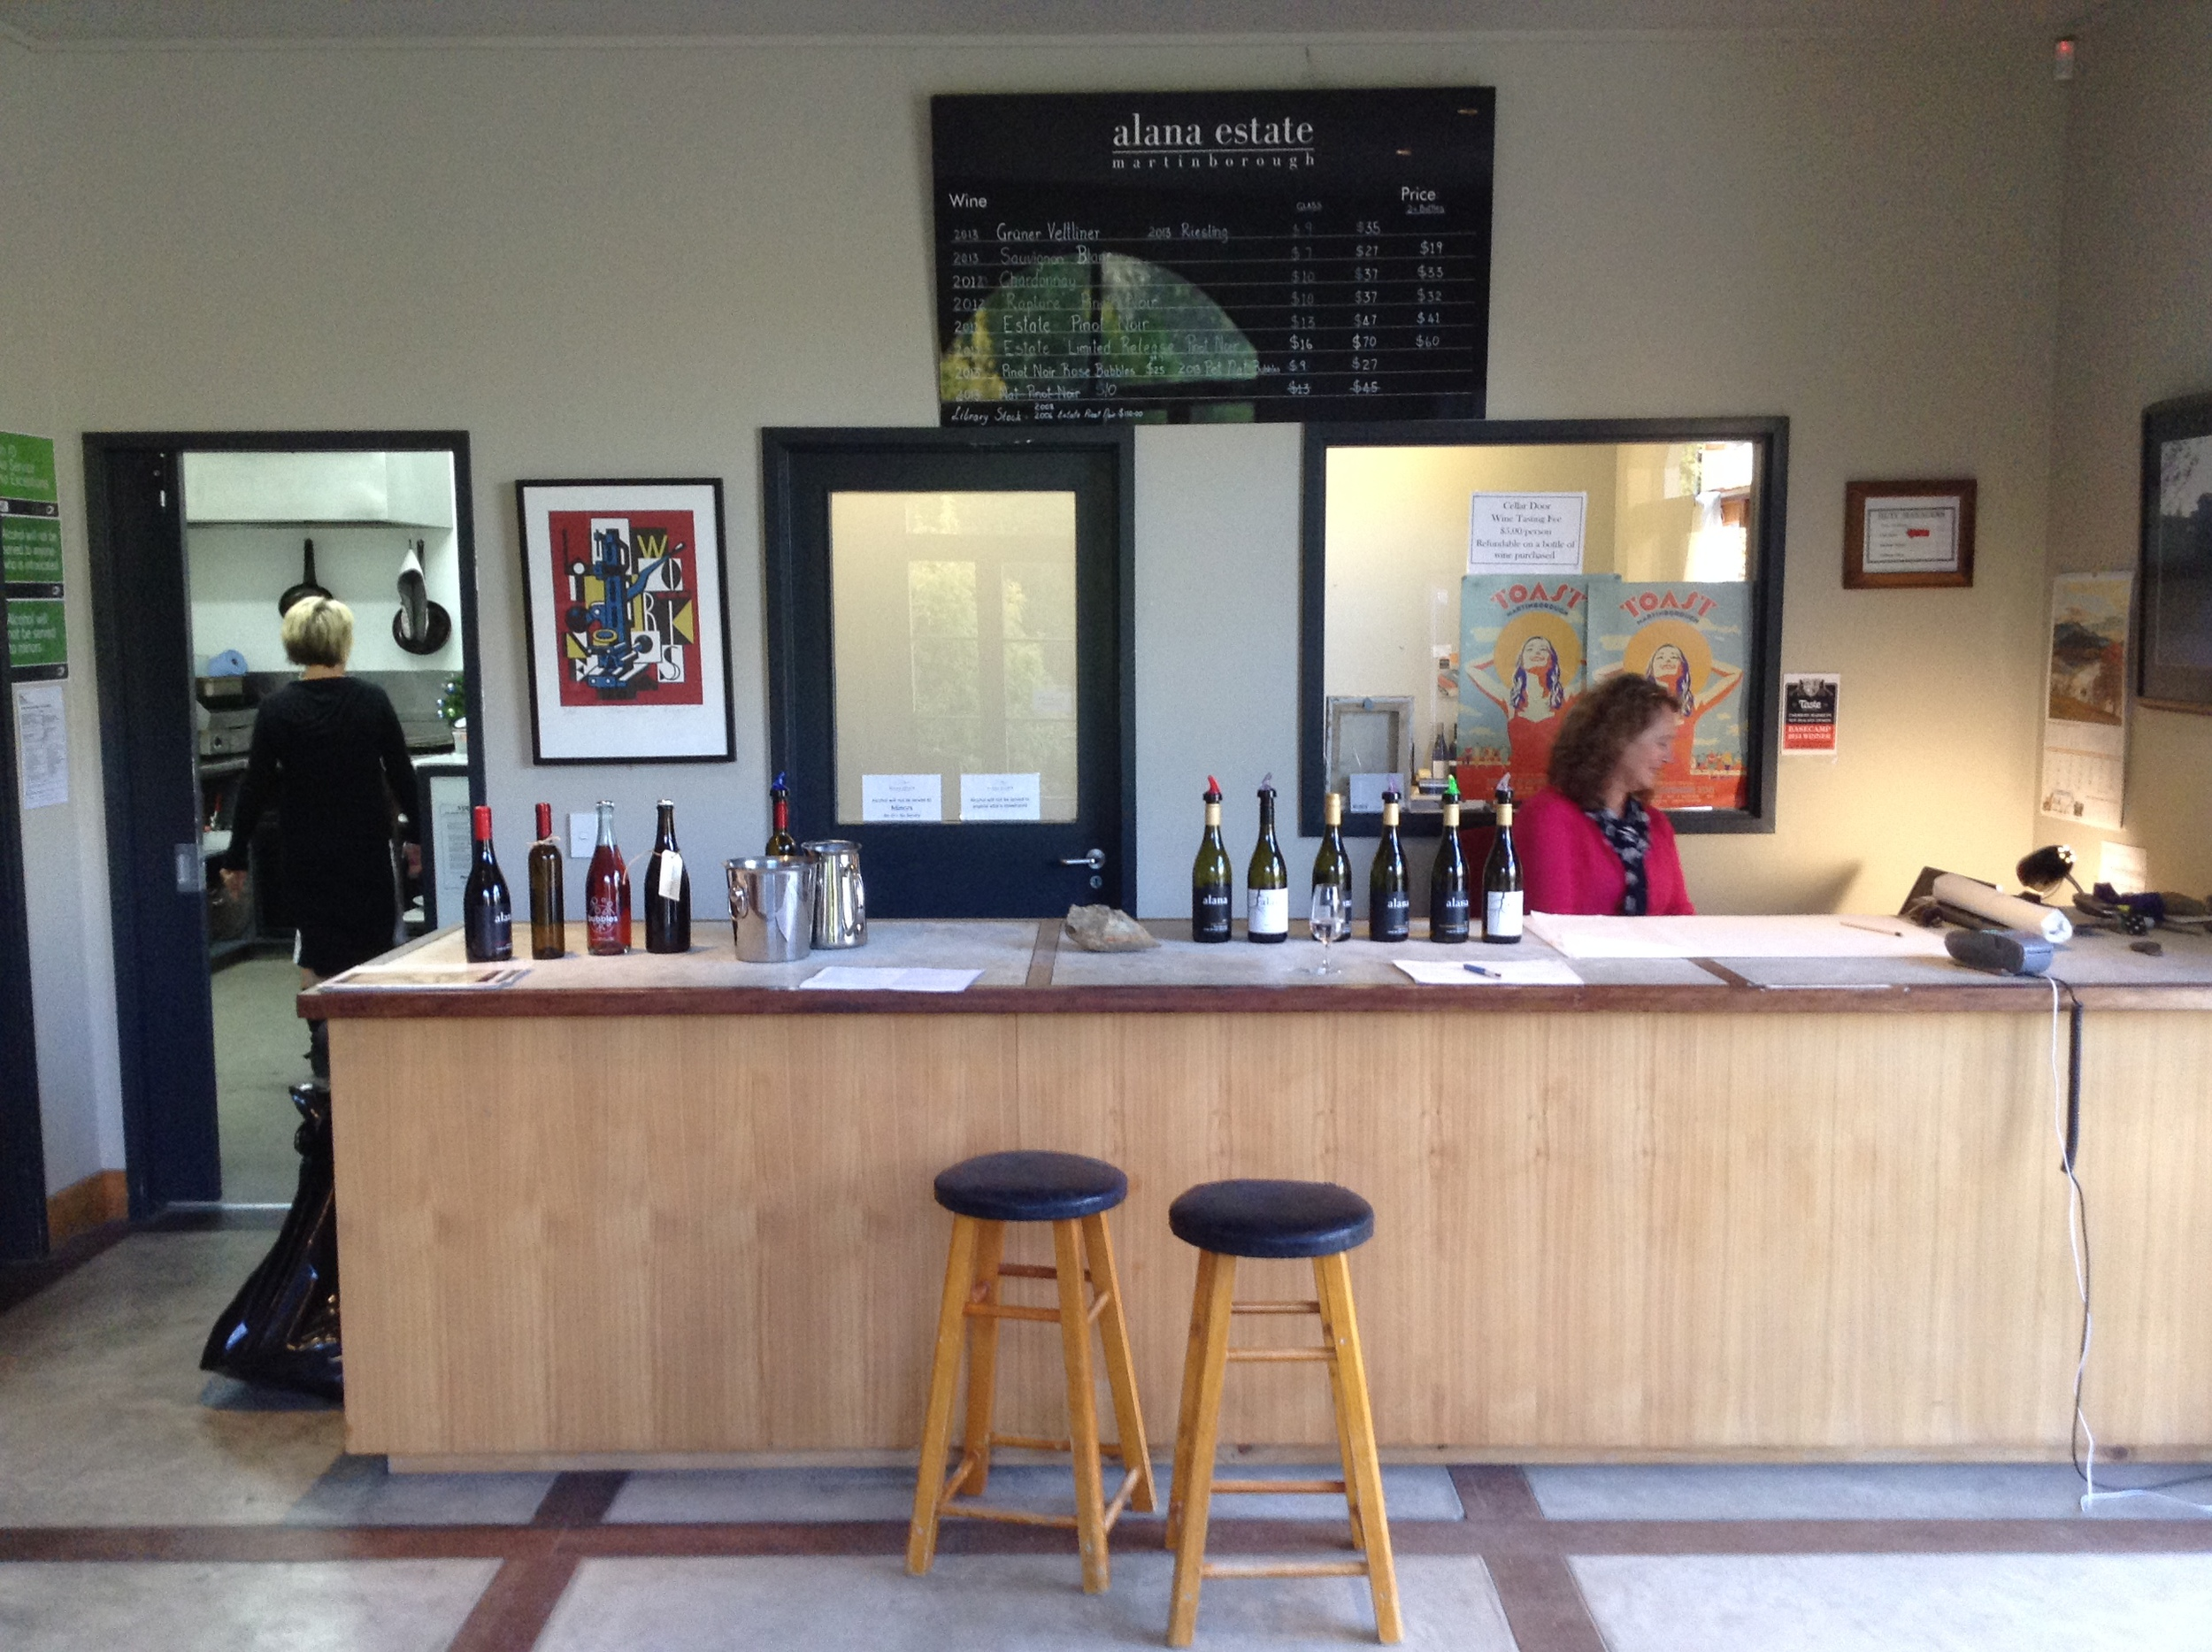 Alana Estate's Cellar Door, operating for the last time in it's current form.